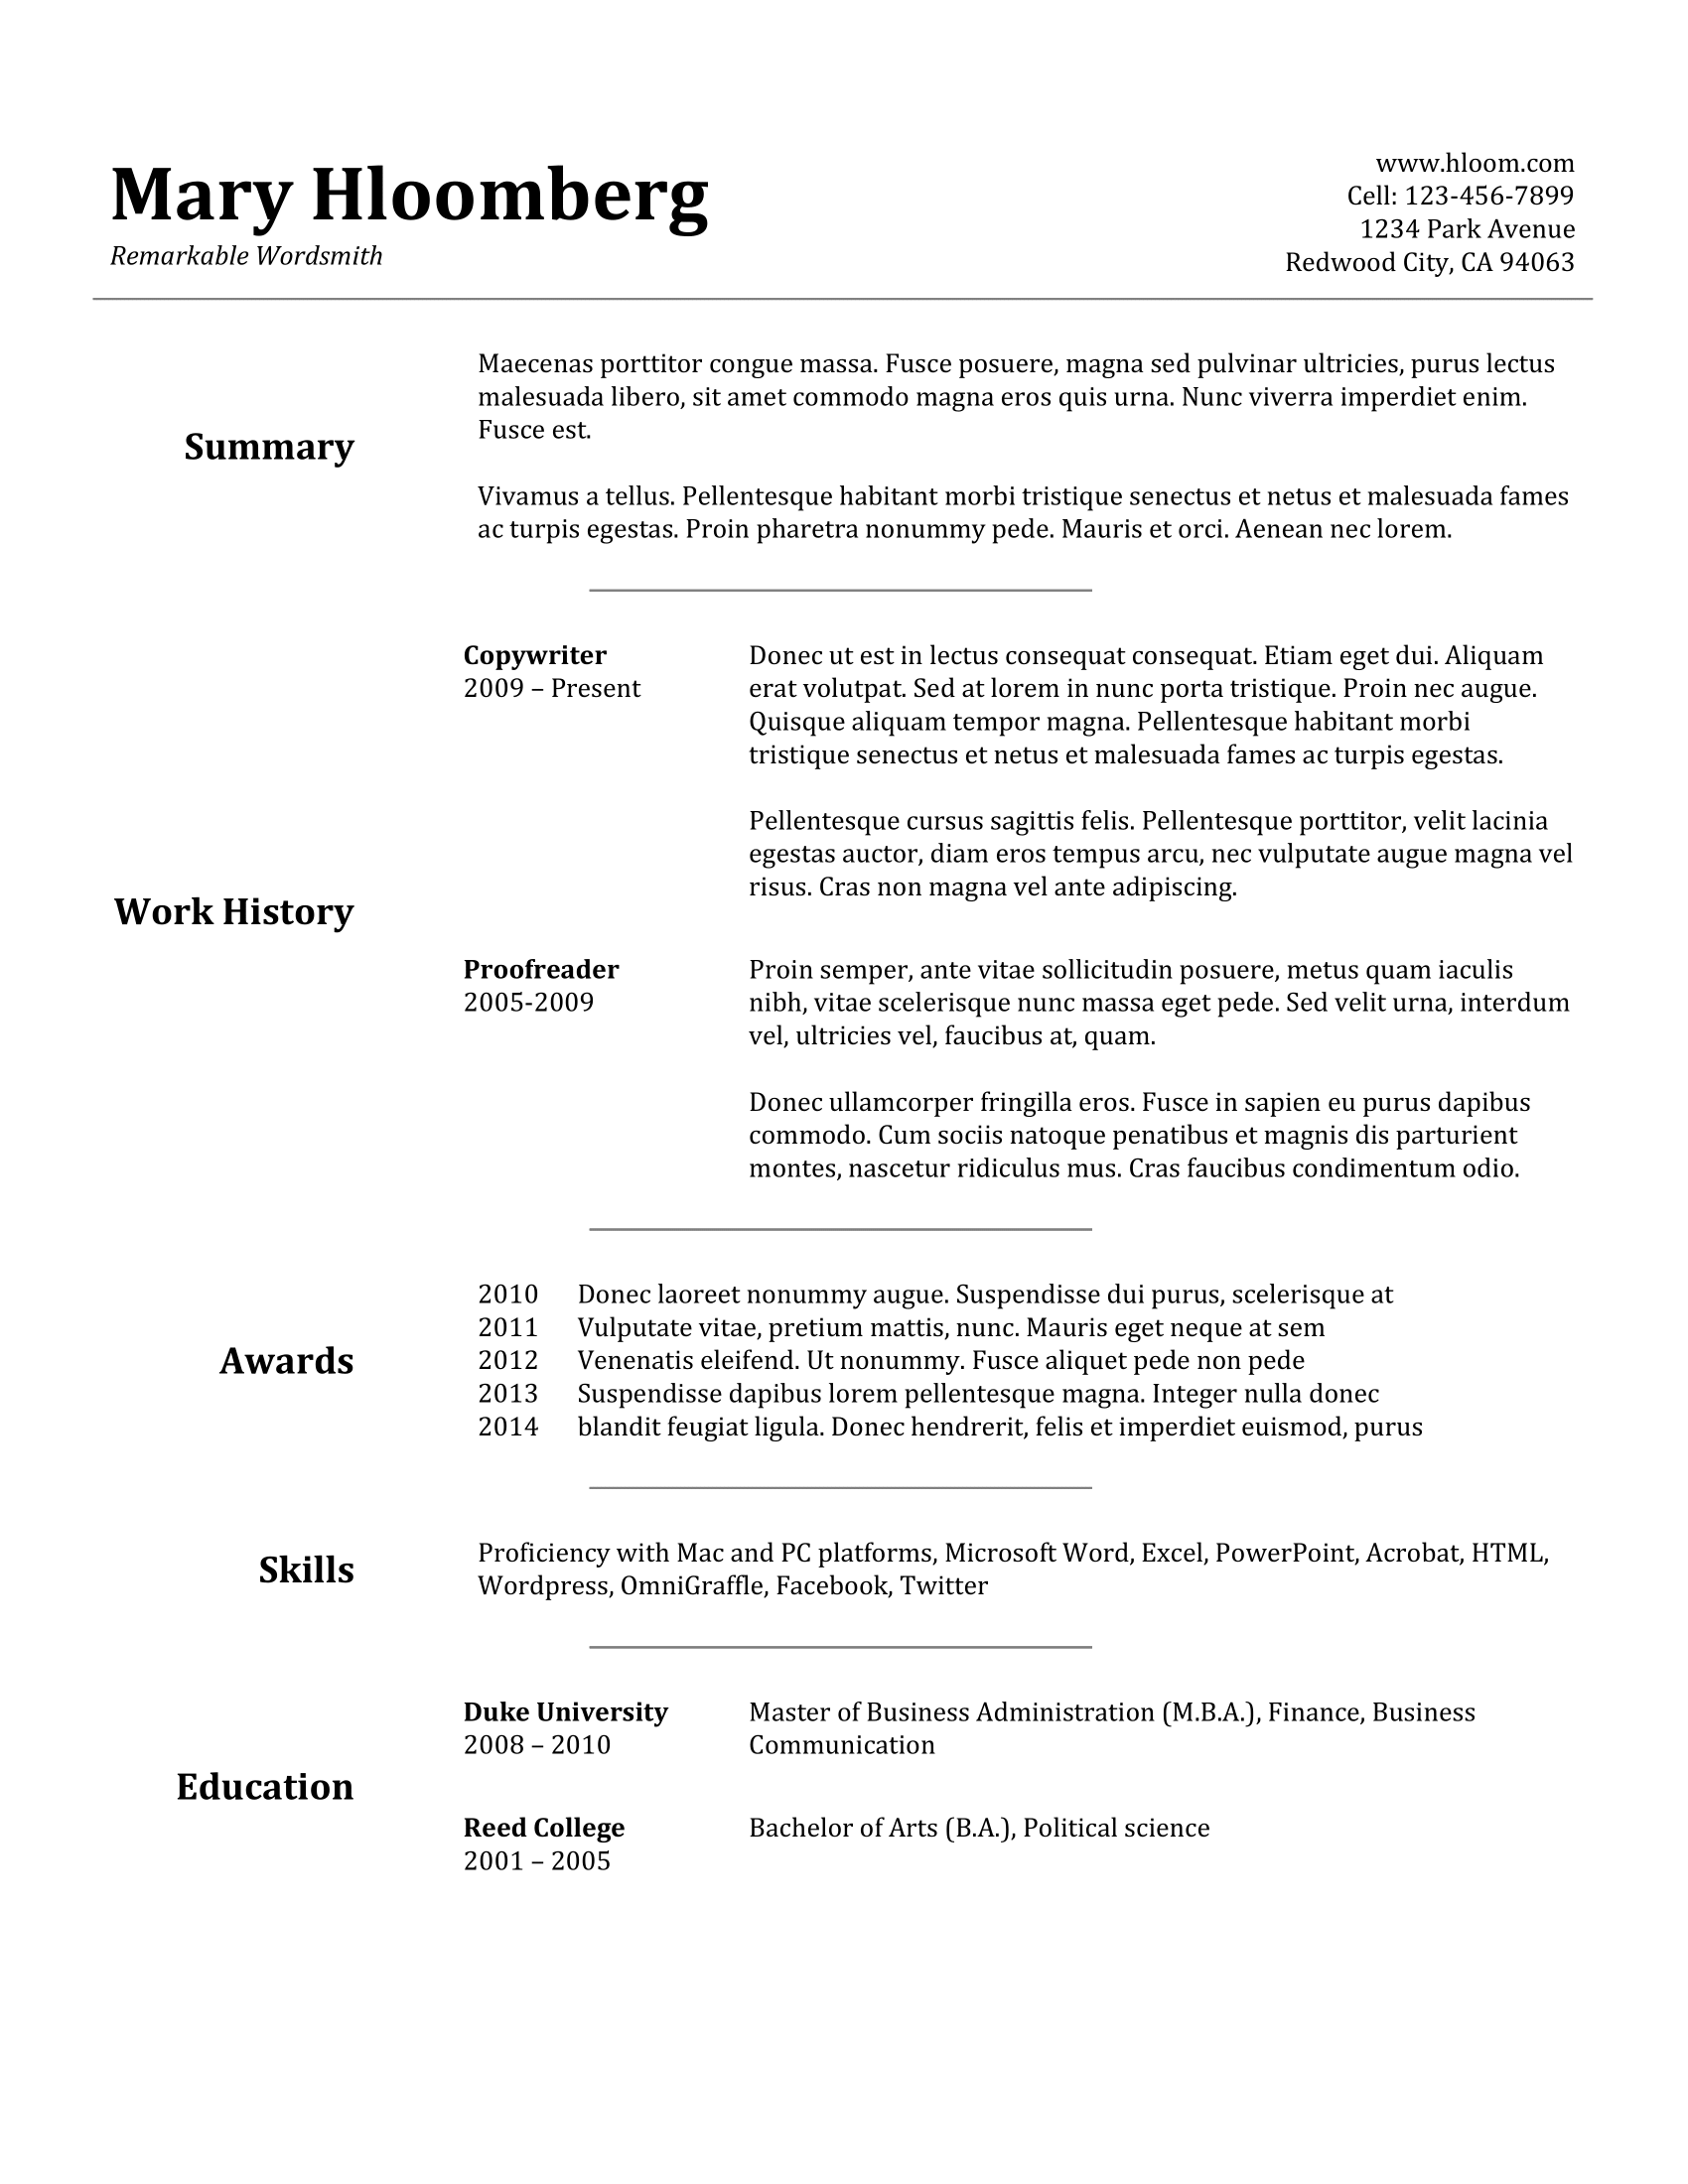 Resume Templates Science 4 Templates Example Templates Example Resume Templates Job Resume Template Job Resume Examples